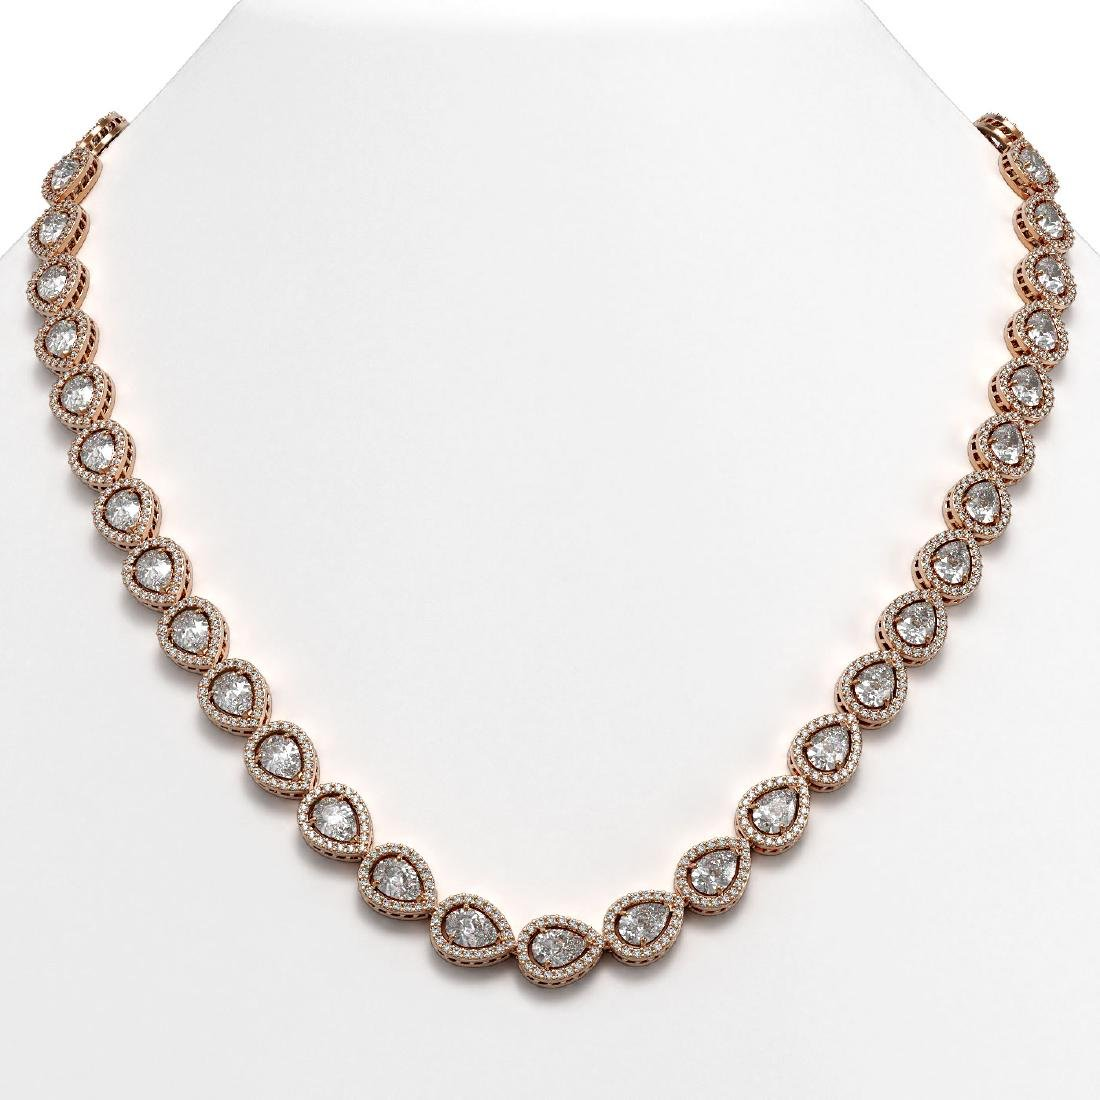 28.74 CTW Pear Diamond Designer Necklace 18K Rose Gold